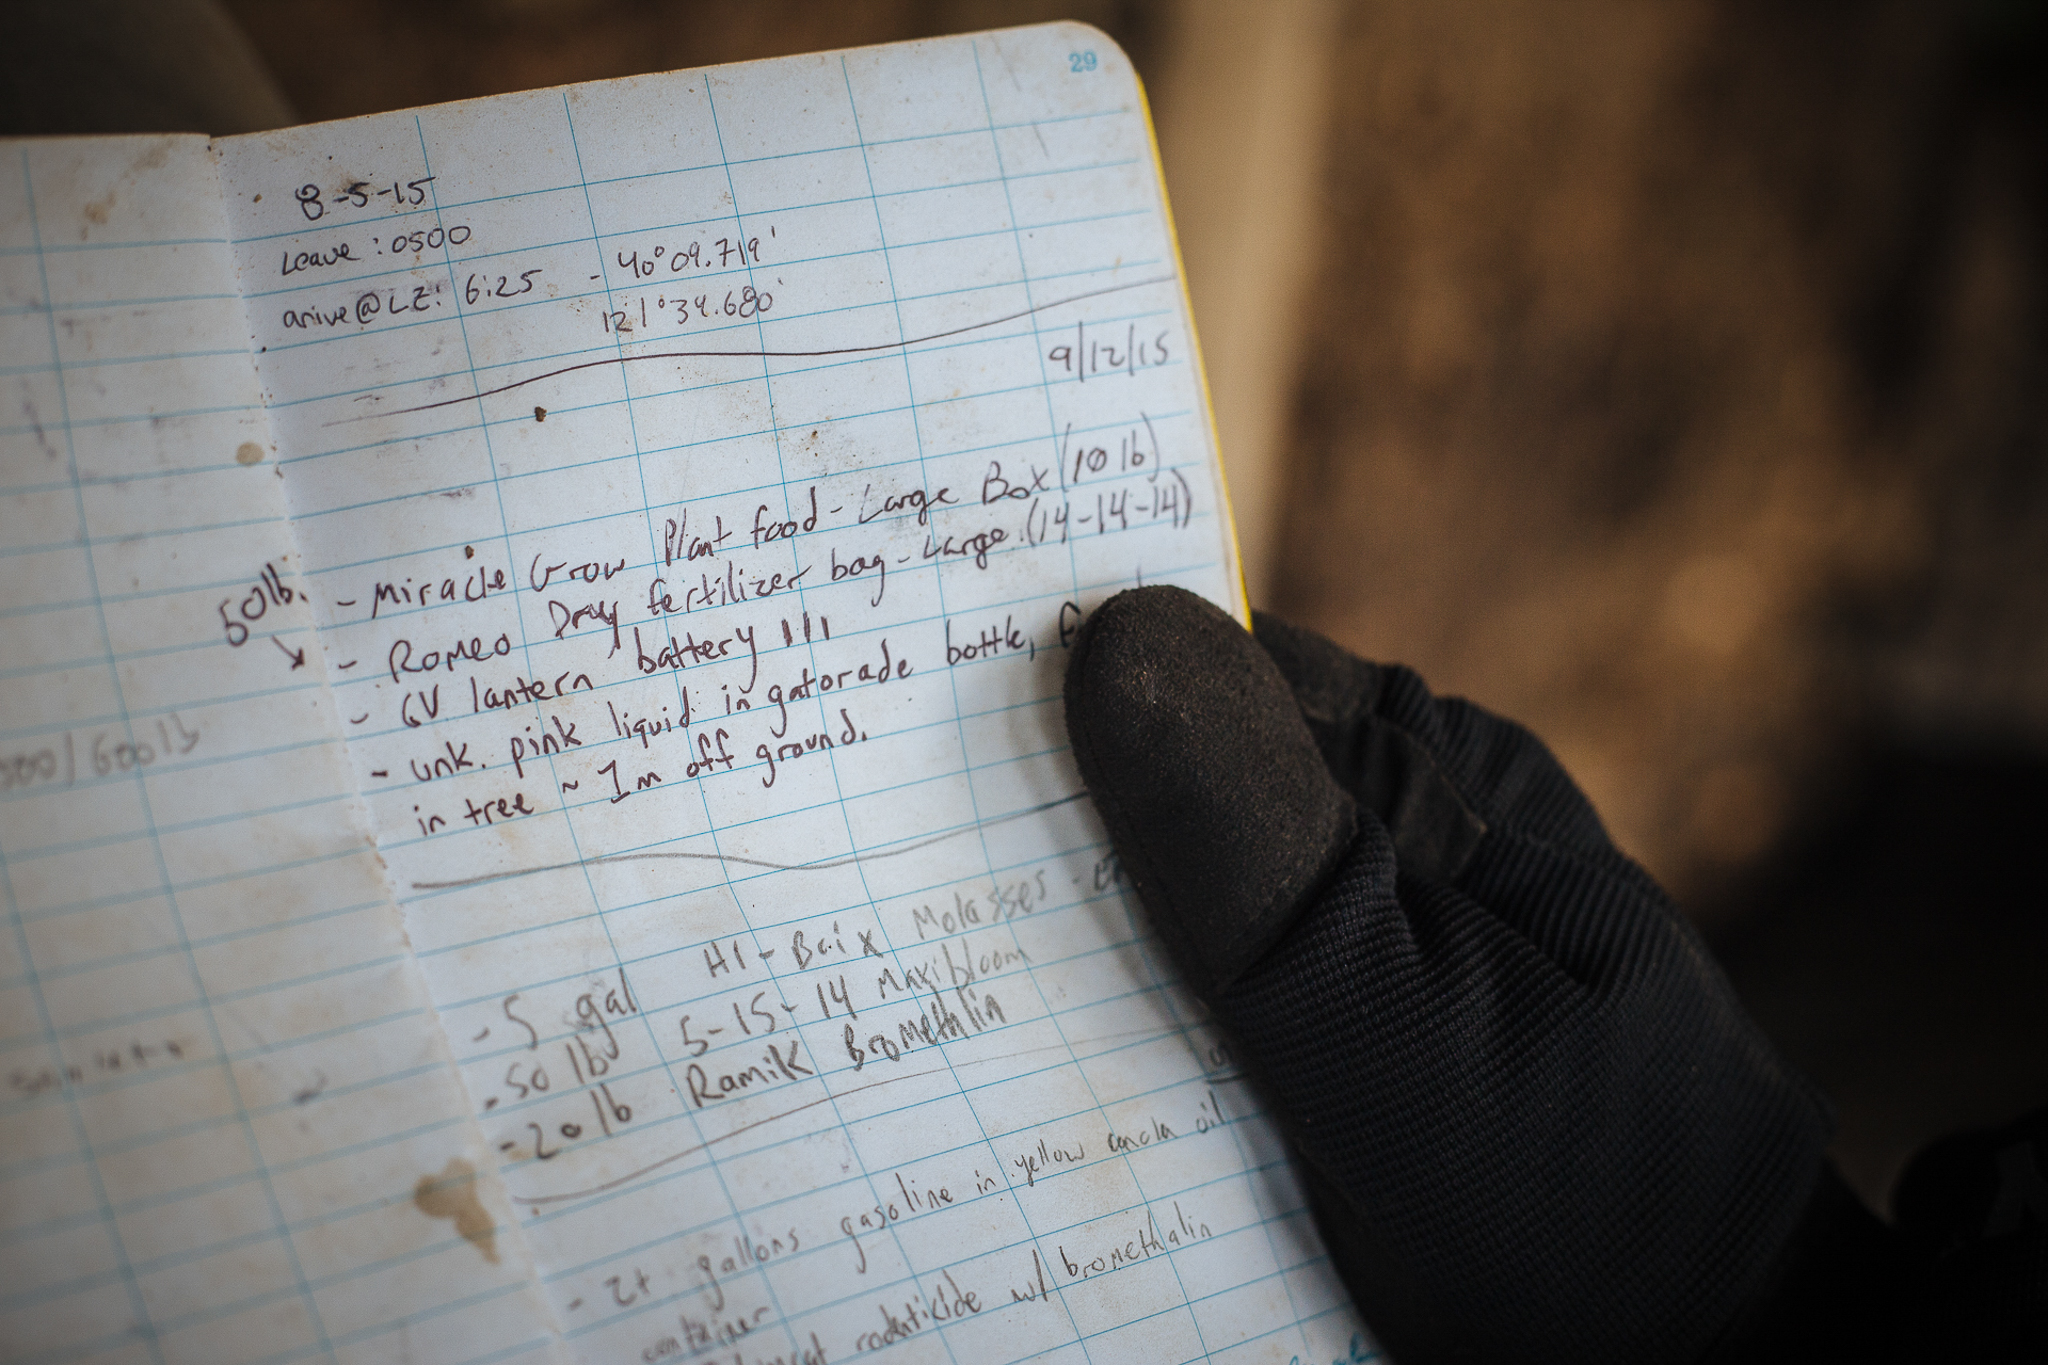 A researcher's notebook lists the chemicals left behind at an illegal grow site on public land.